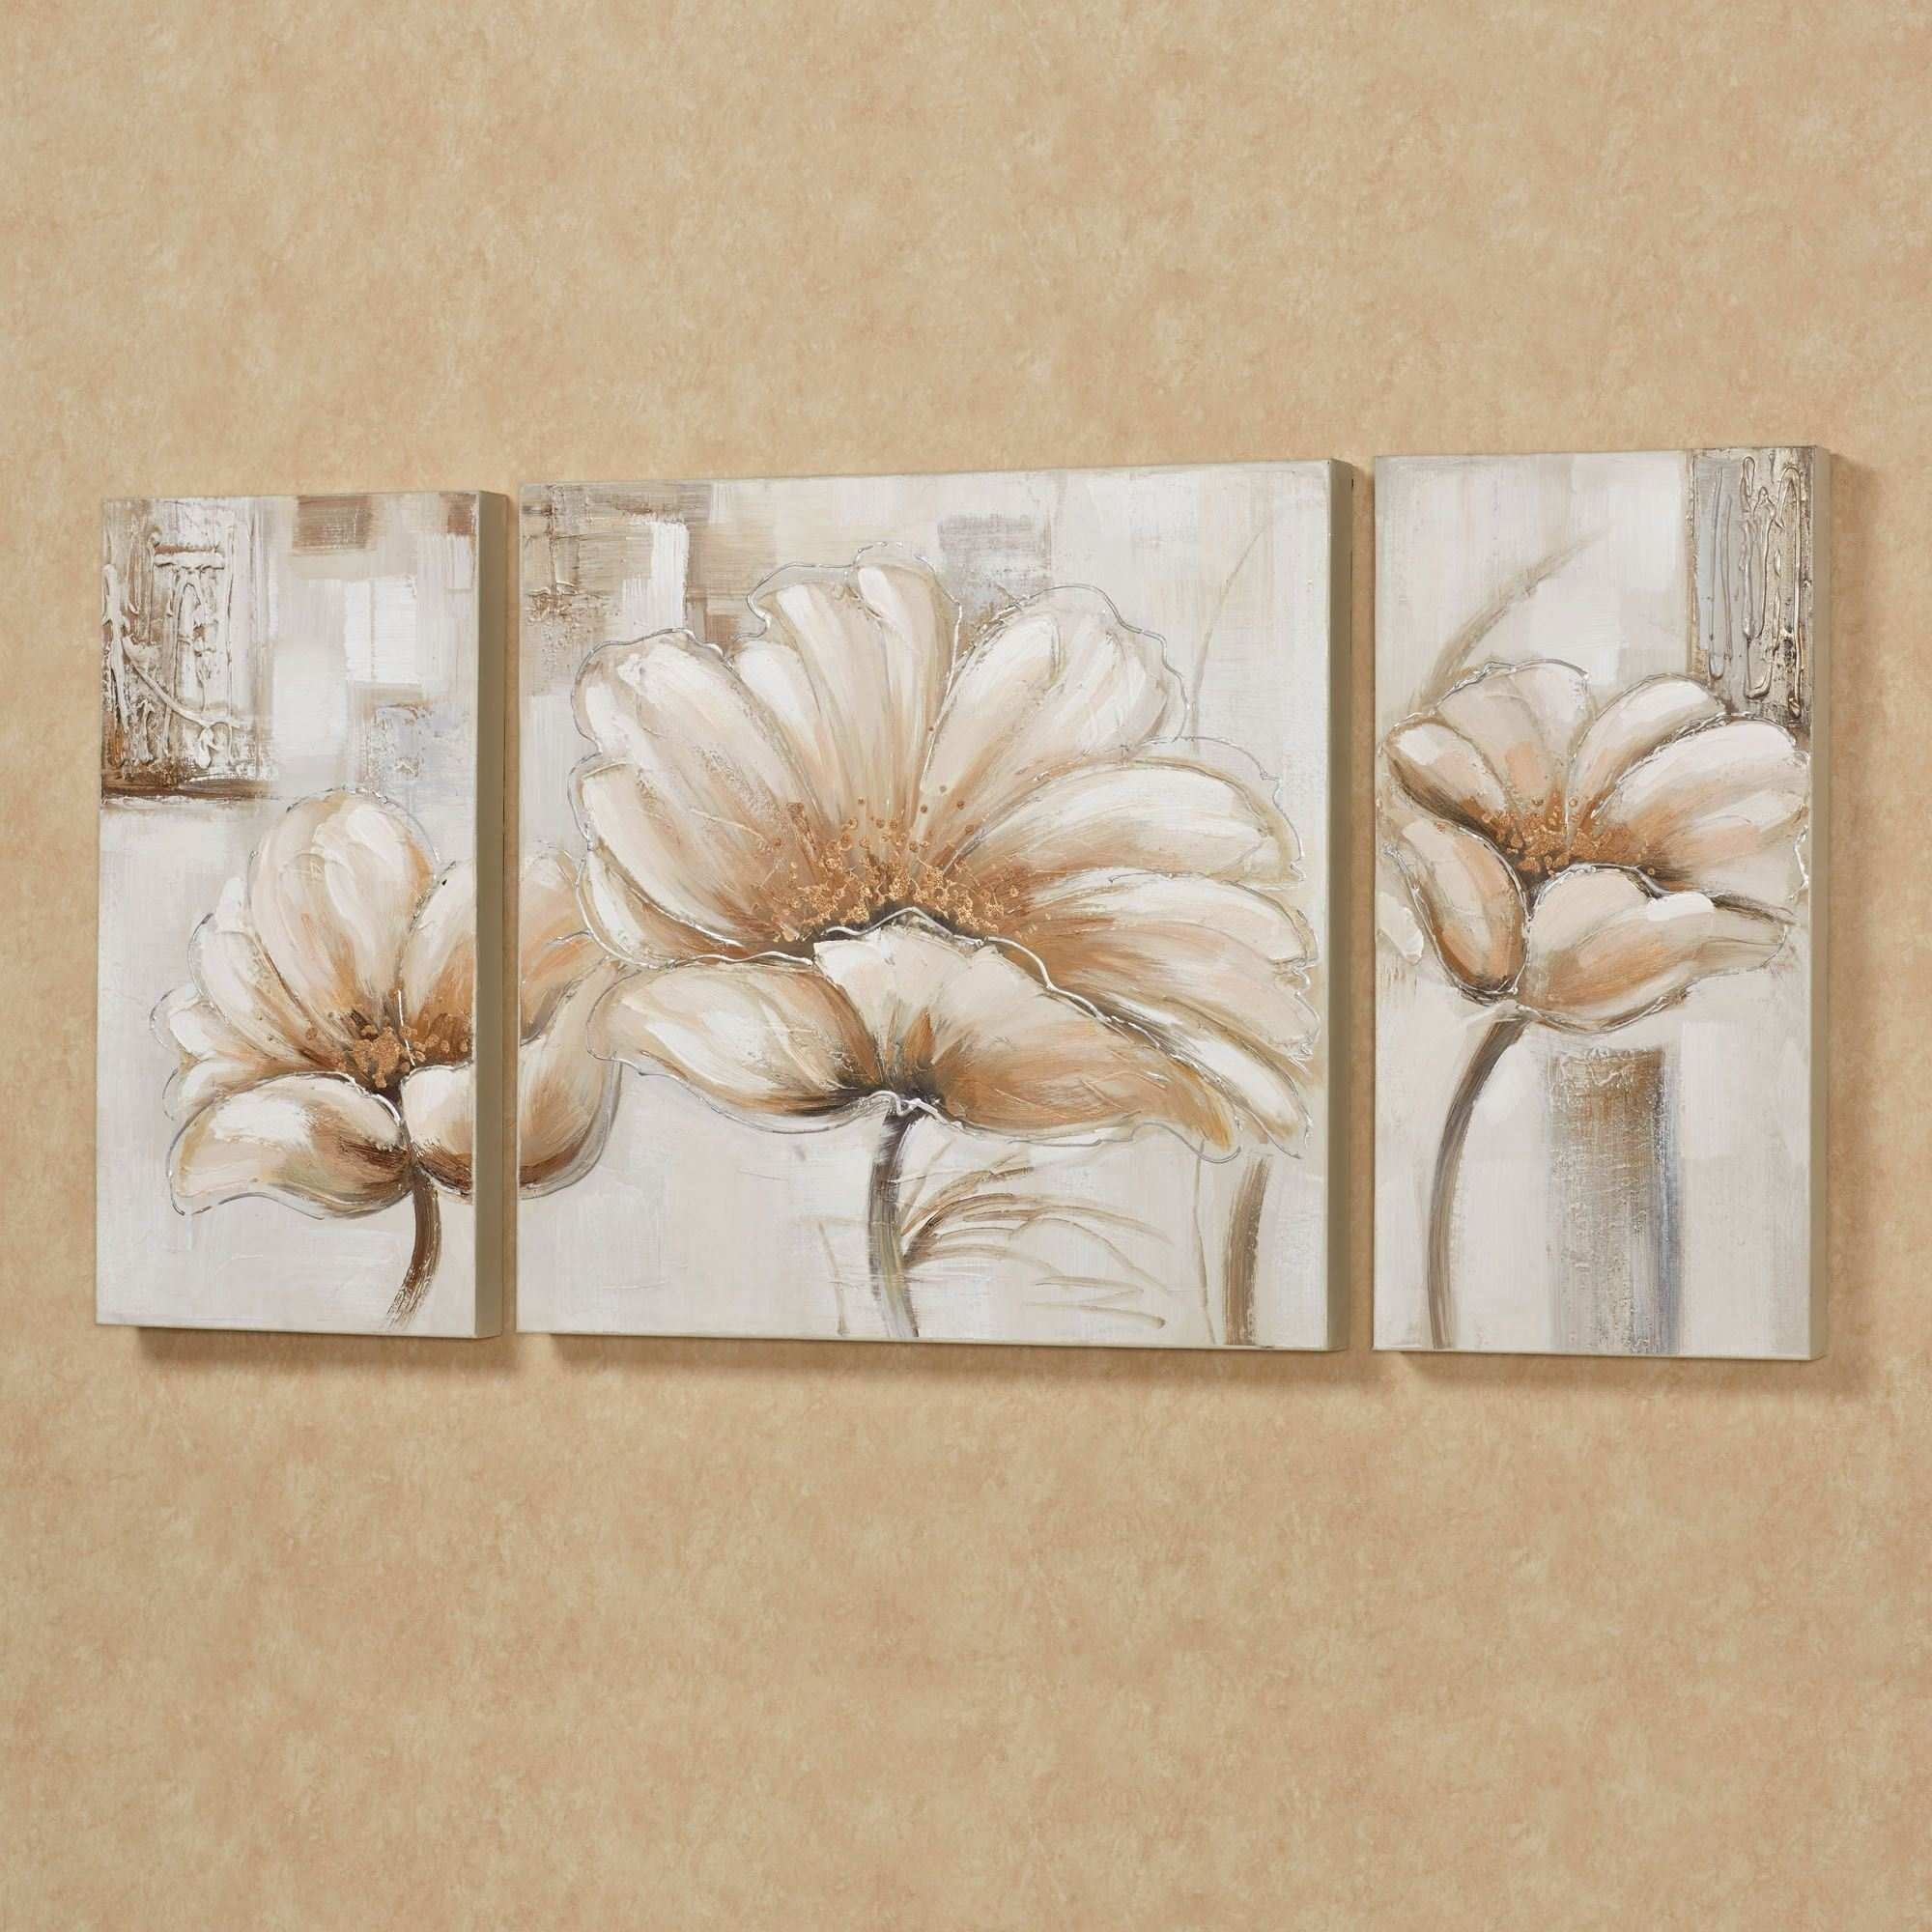 Canvas Wall Art Ideas Awesome Blooming Splendor Floral Triptych Within Latest Floral Canvas Wall Art (View 7 of 20)